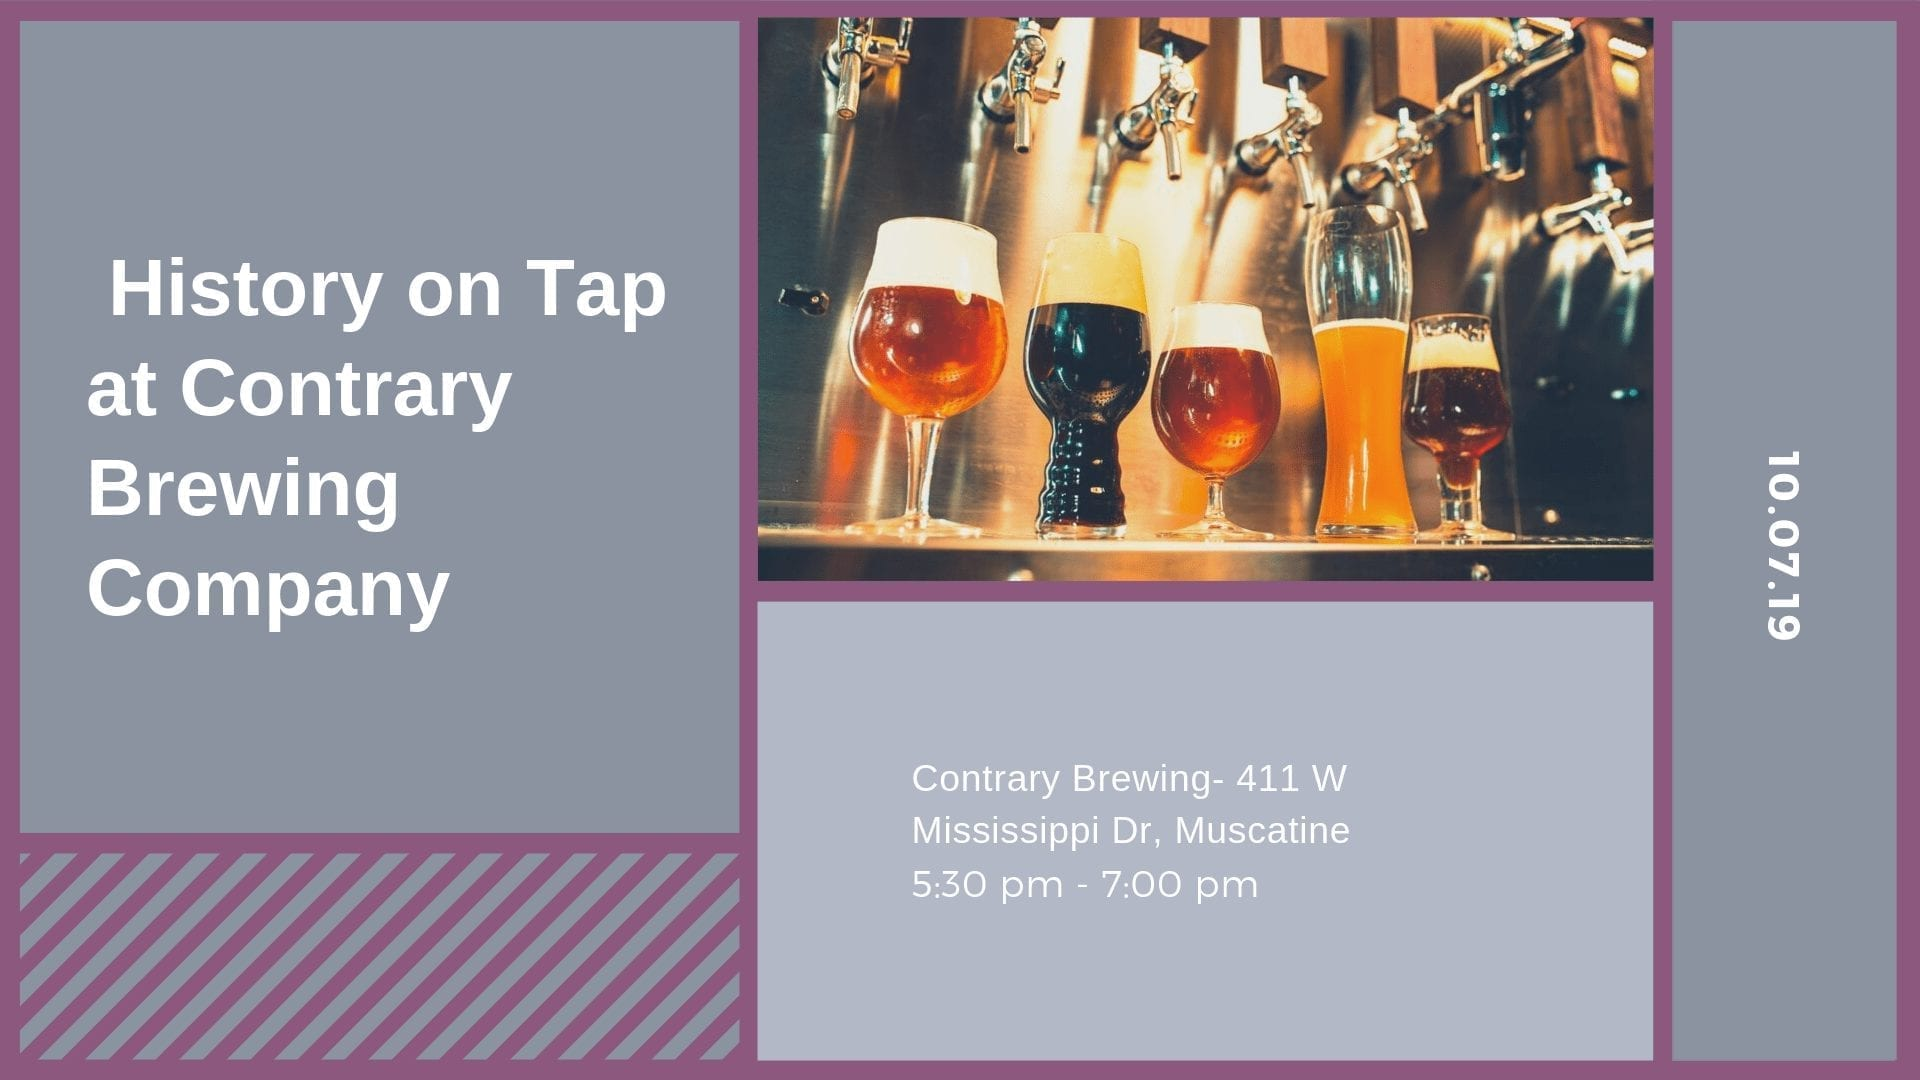 History on Tap at Contrary Brewing Company